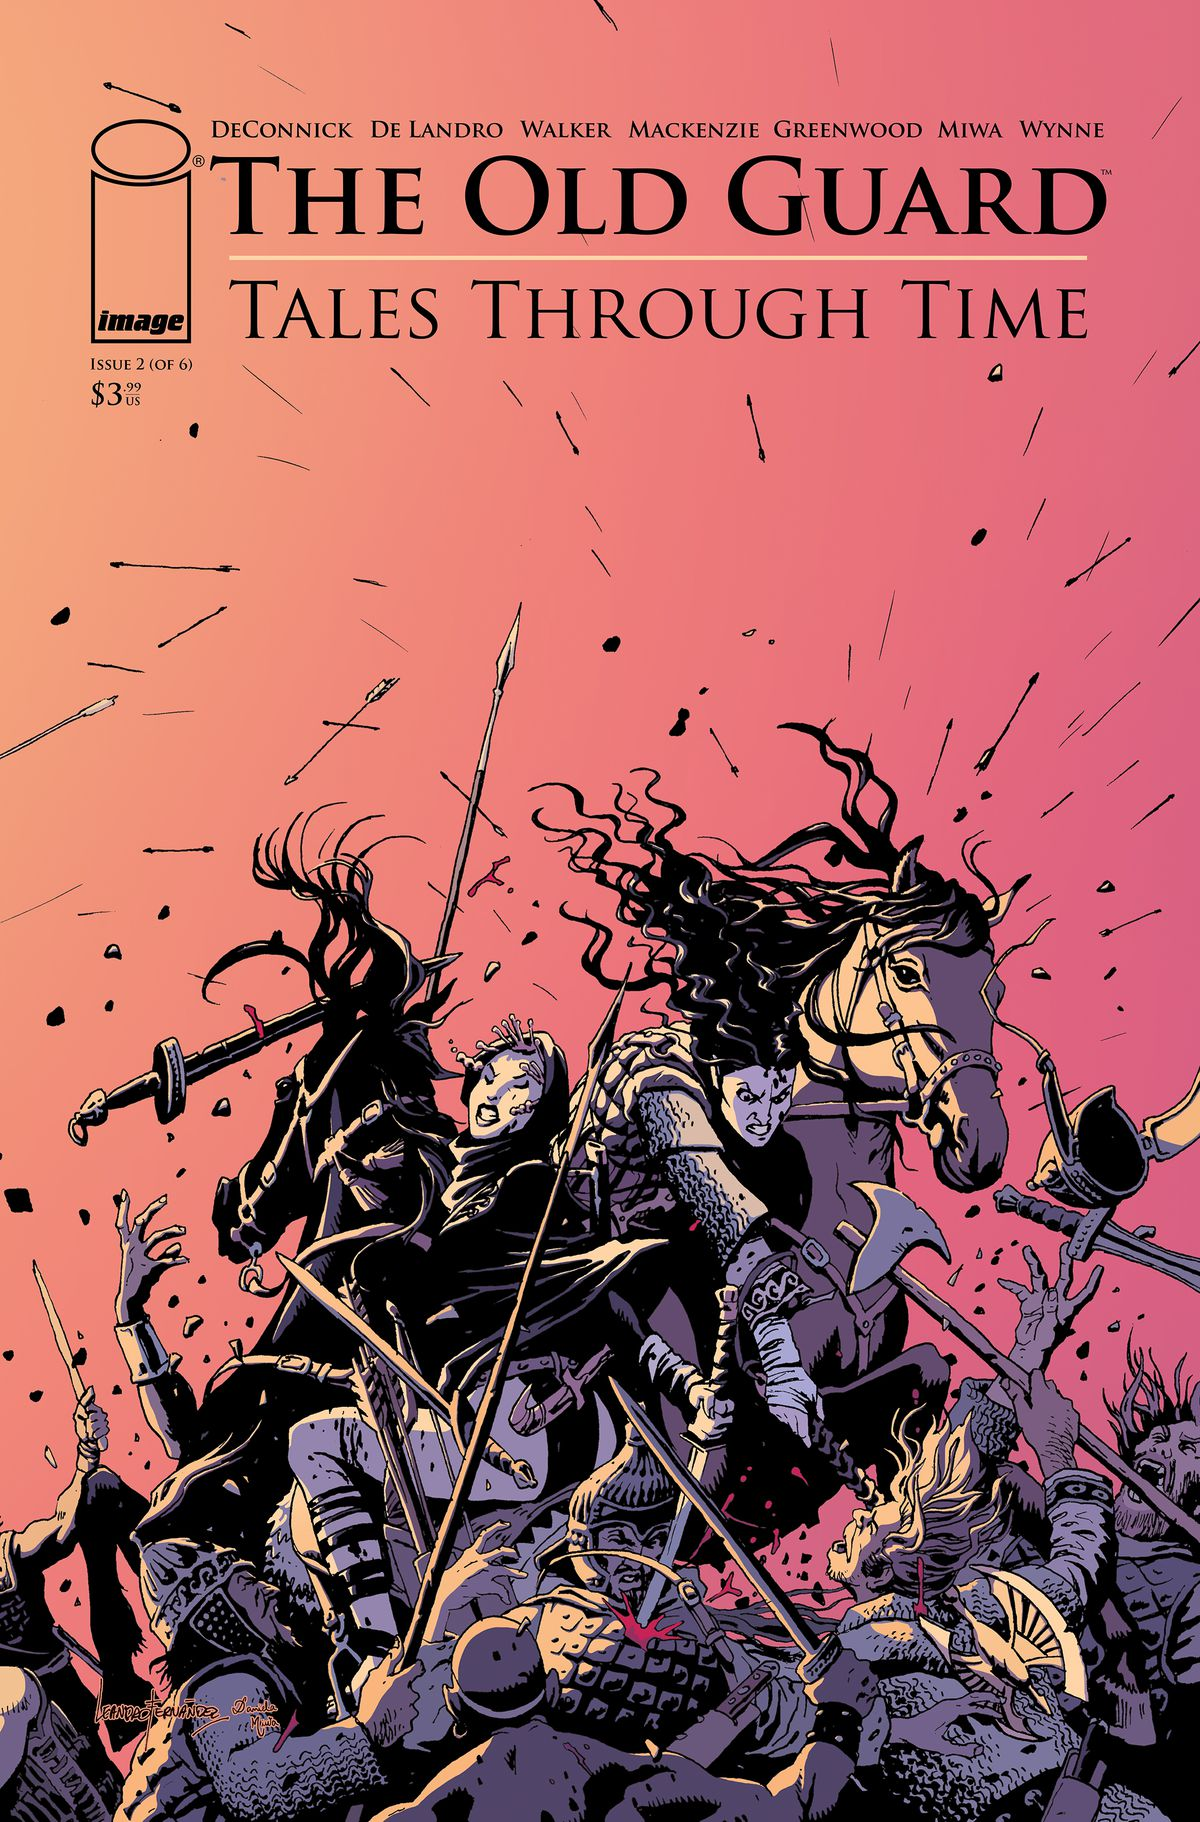 The Old Guard: Tales Through Time issue #2 cover - two warrior women on horseback fight an army